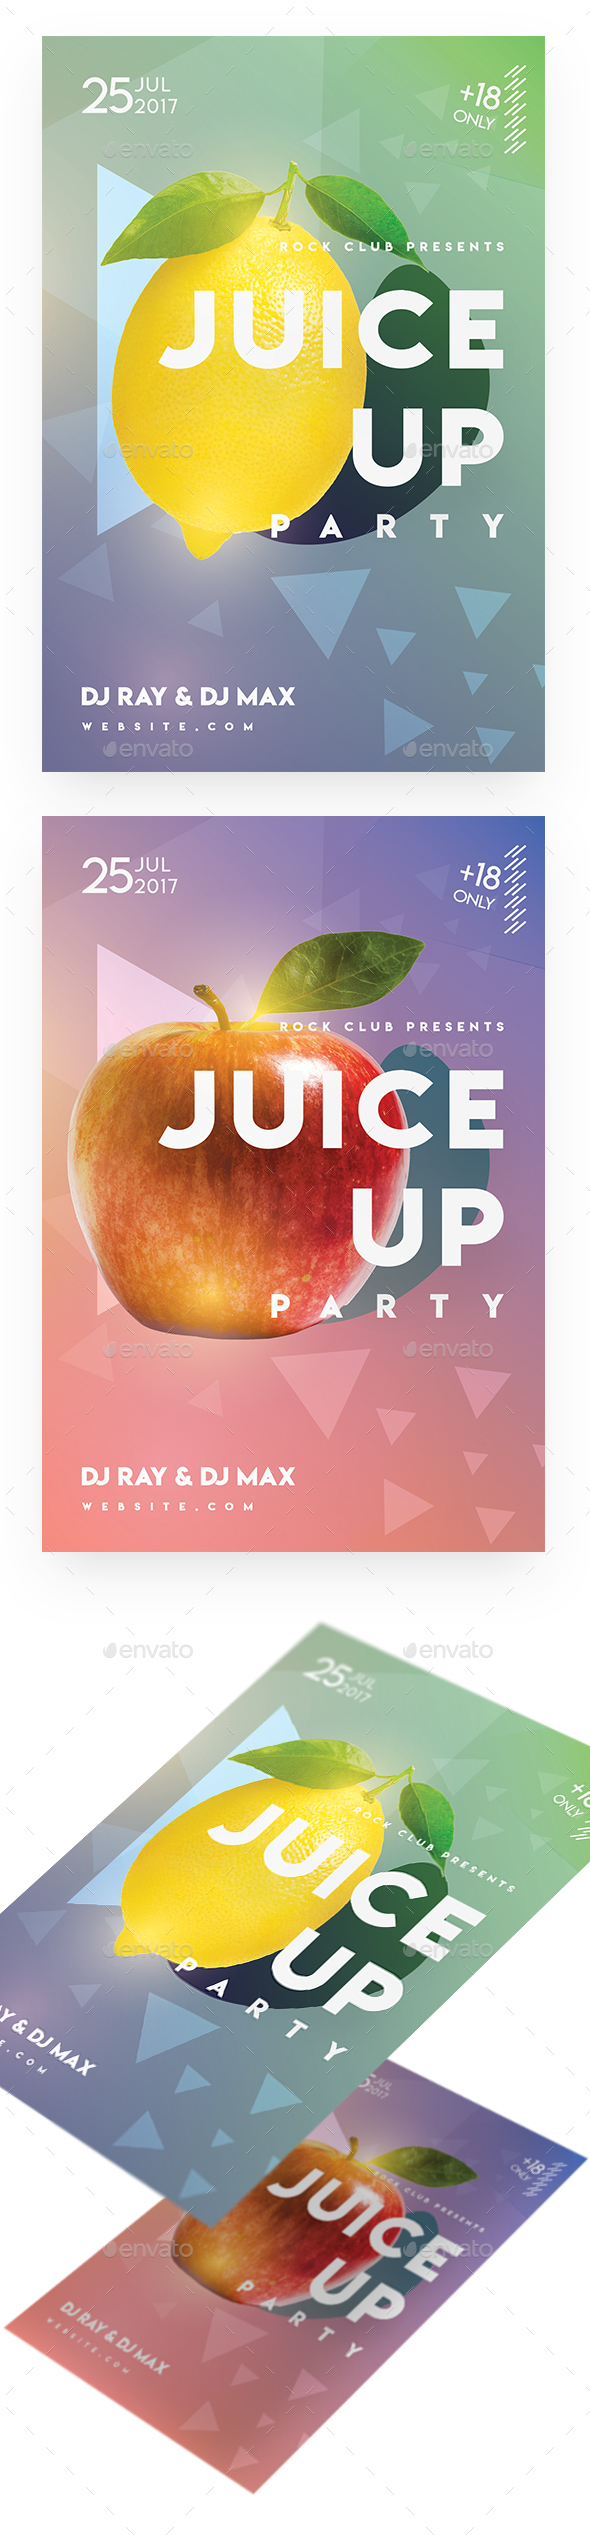 Juice Up Party Flyer - Clubs & Parties Events